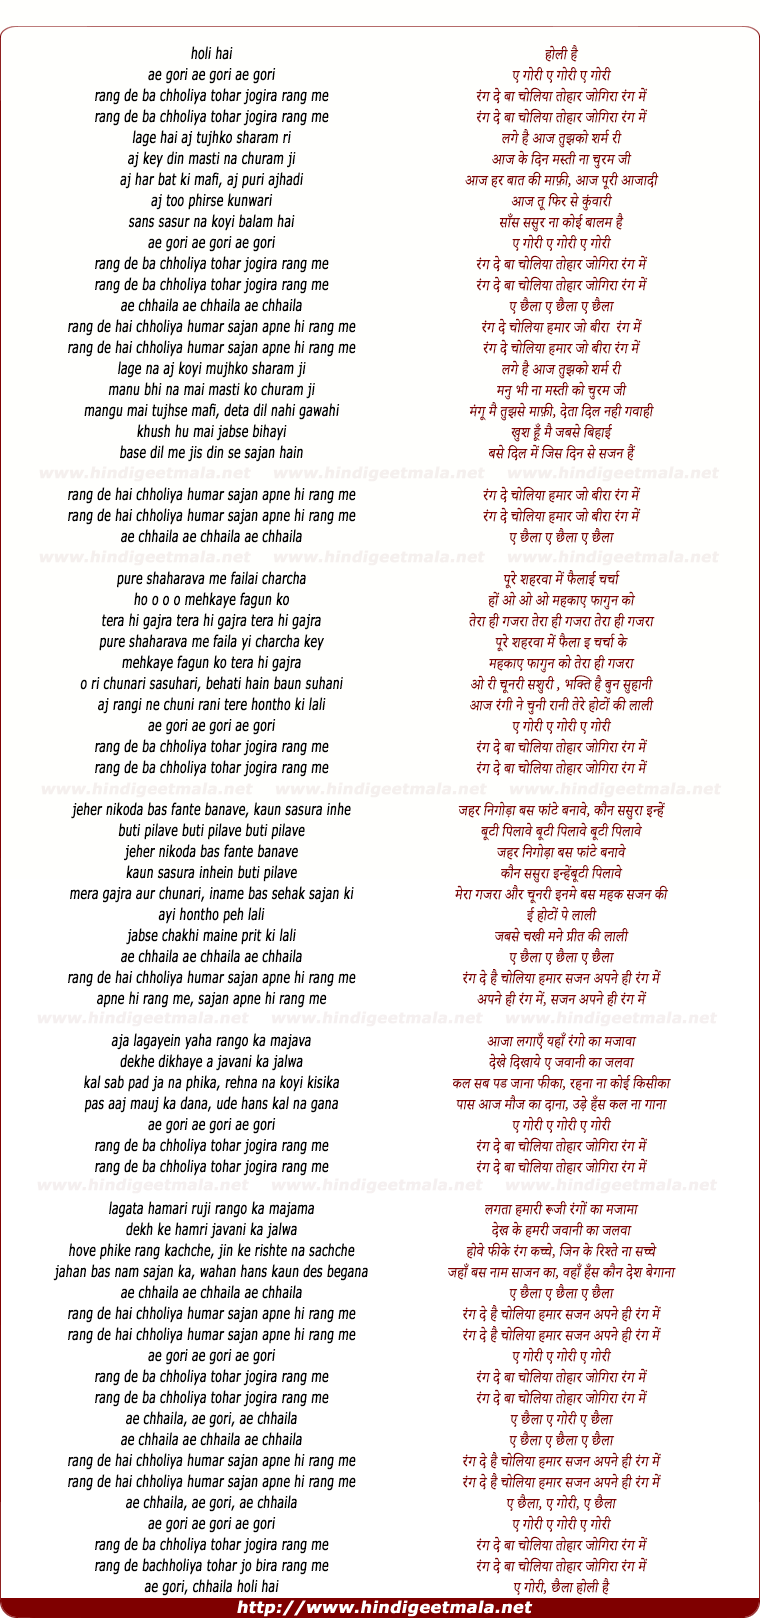 lyrics of song Ey Goree Rang De Bachholiya